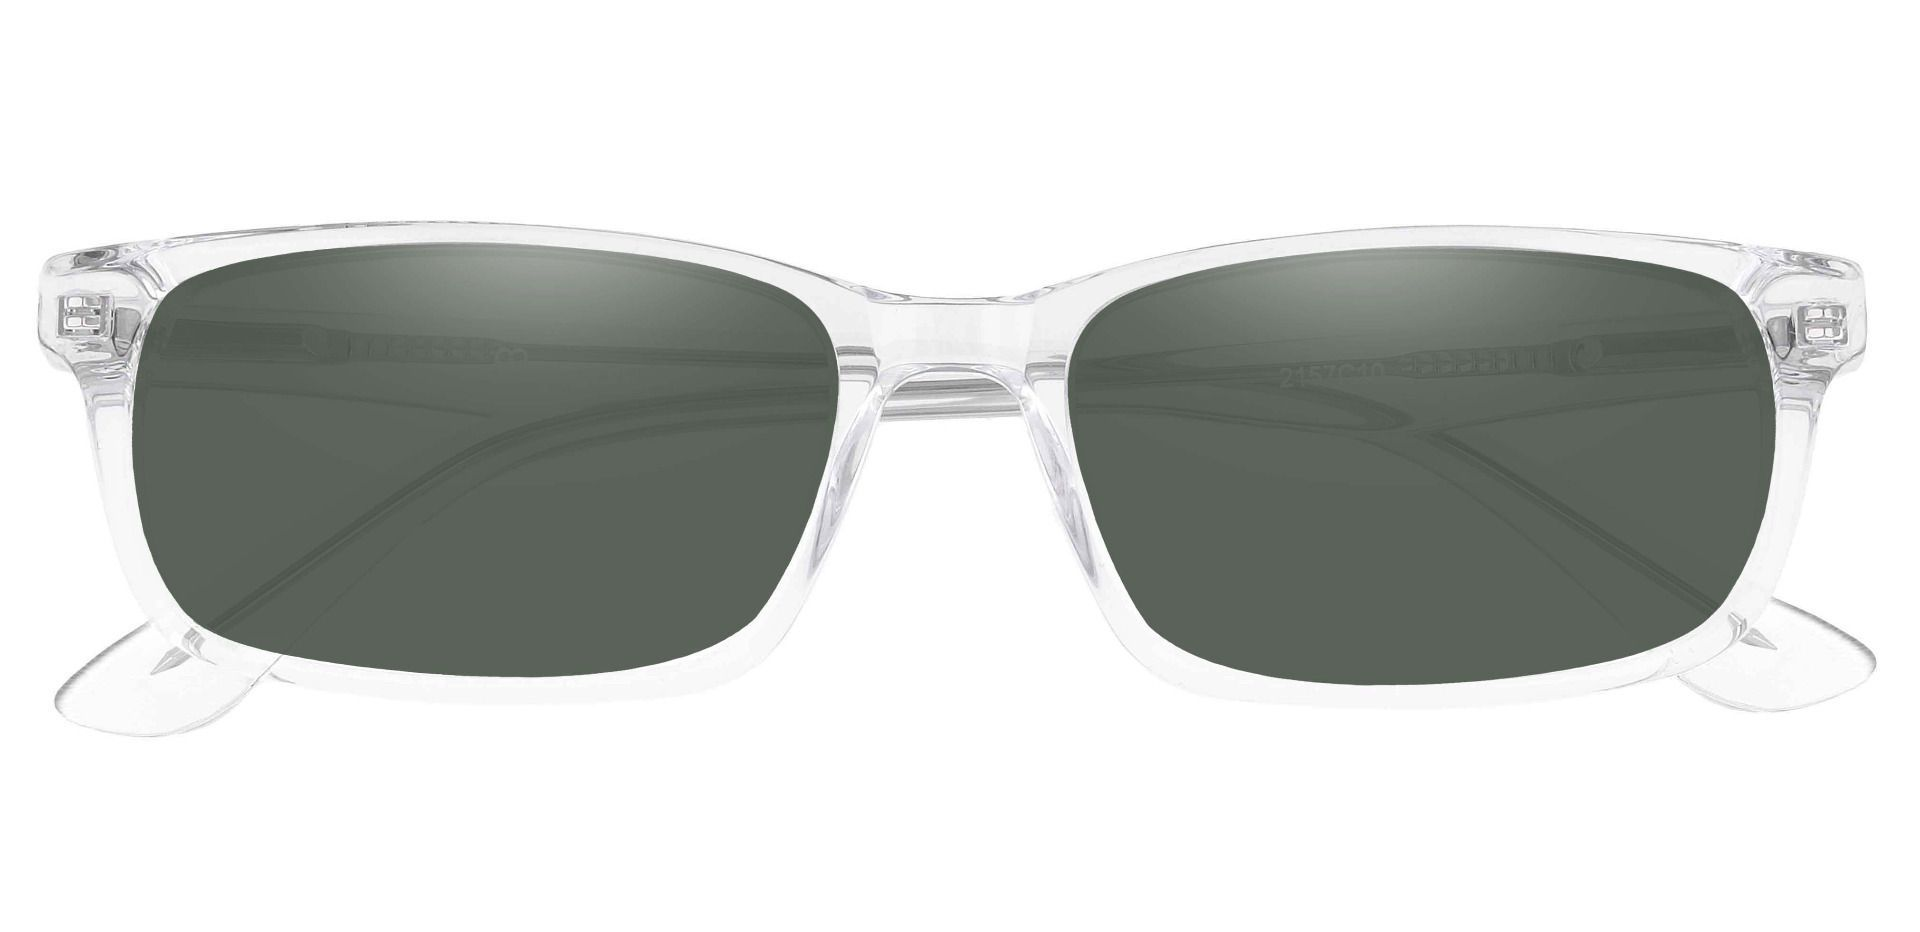 Hendrix Rectangle Non-Rx Sunglasses - Clear Frame With Green Lenses